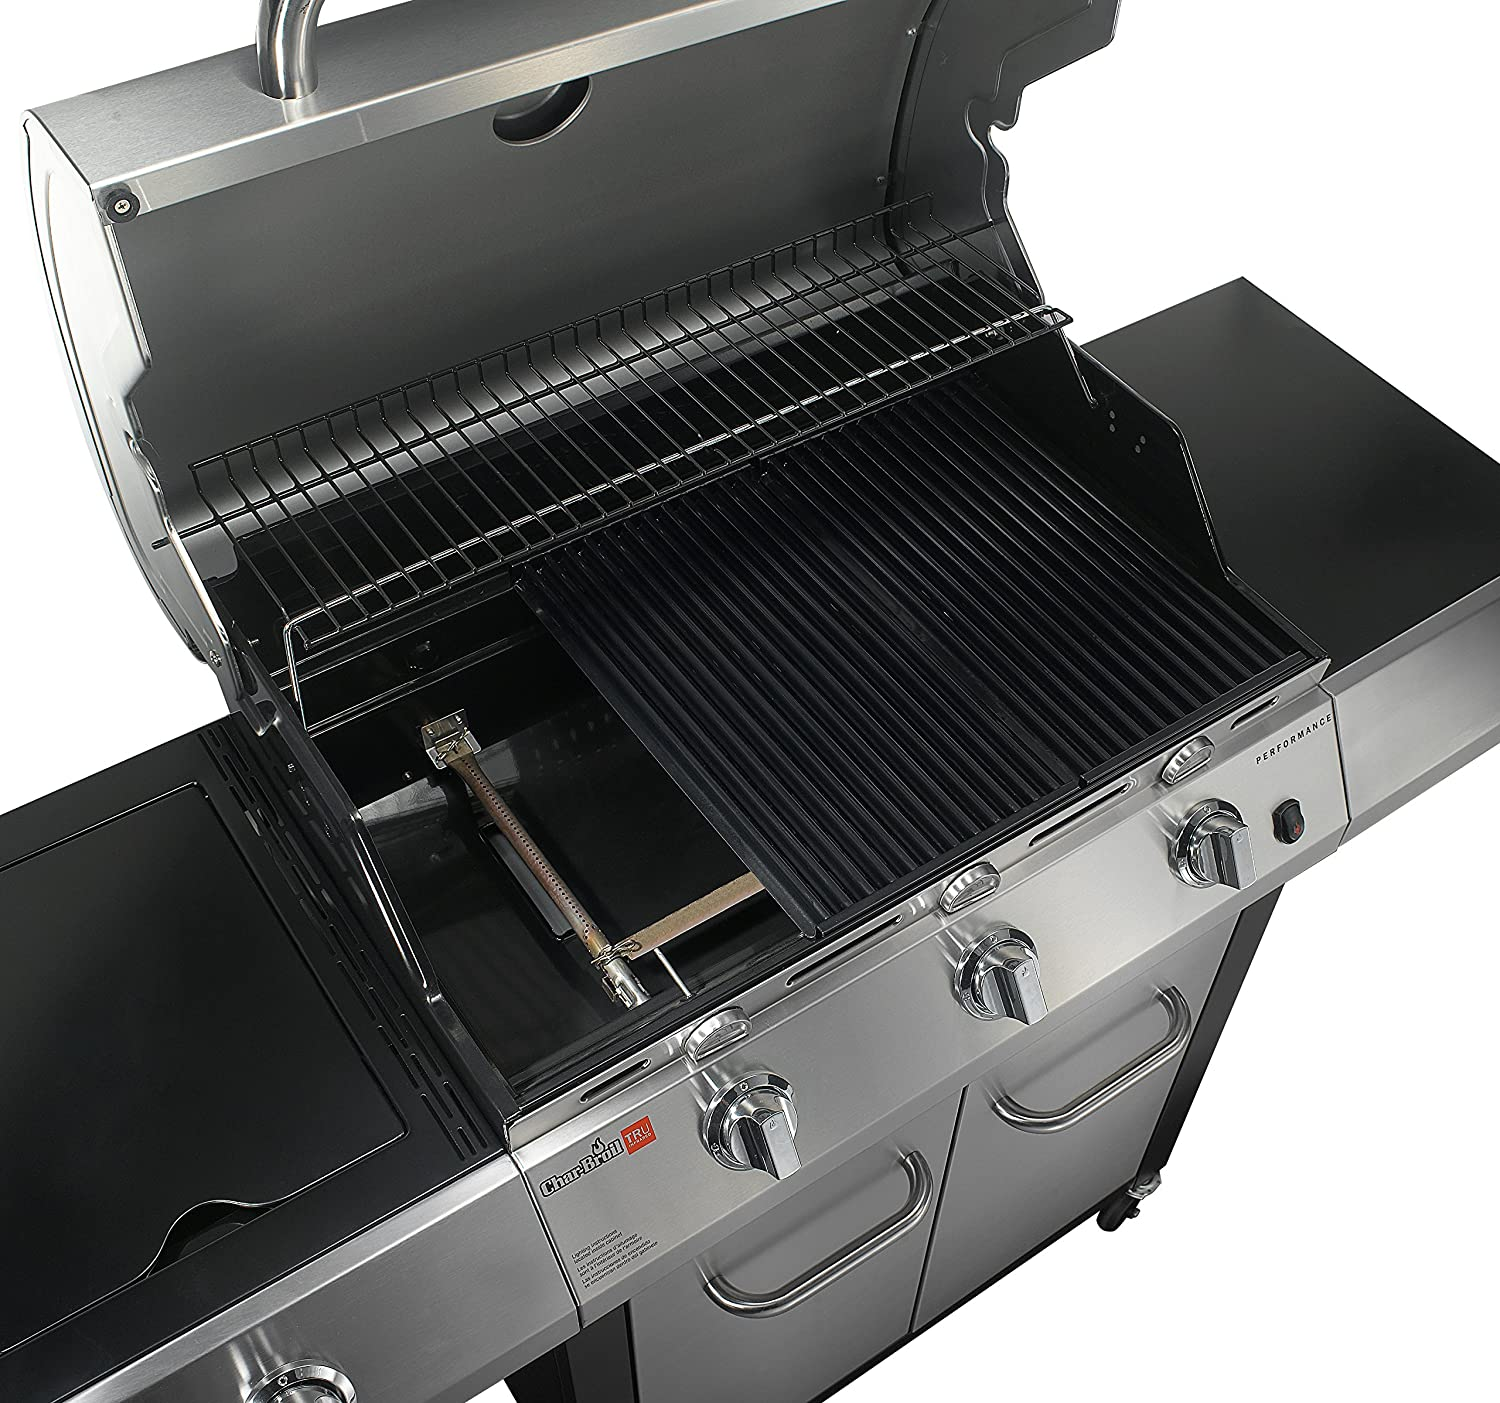 char broil 3 burner gas grill review